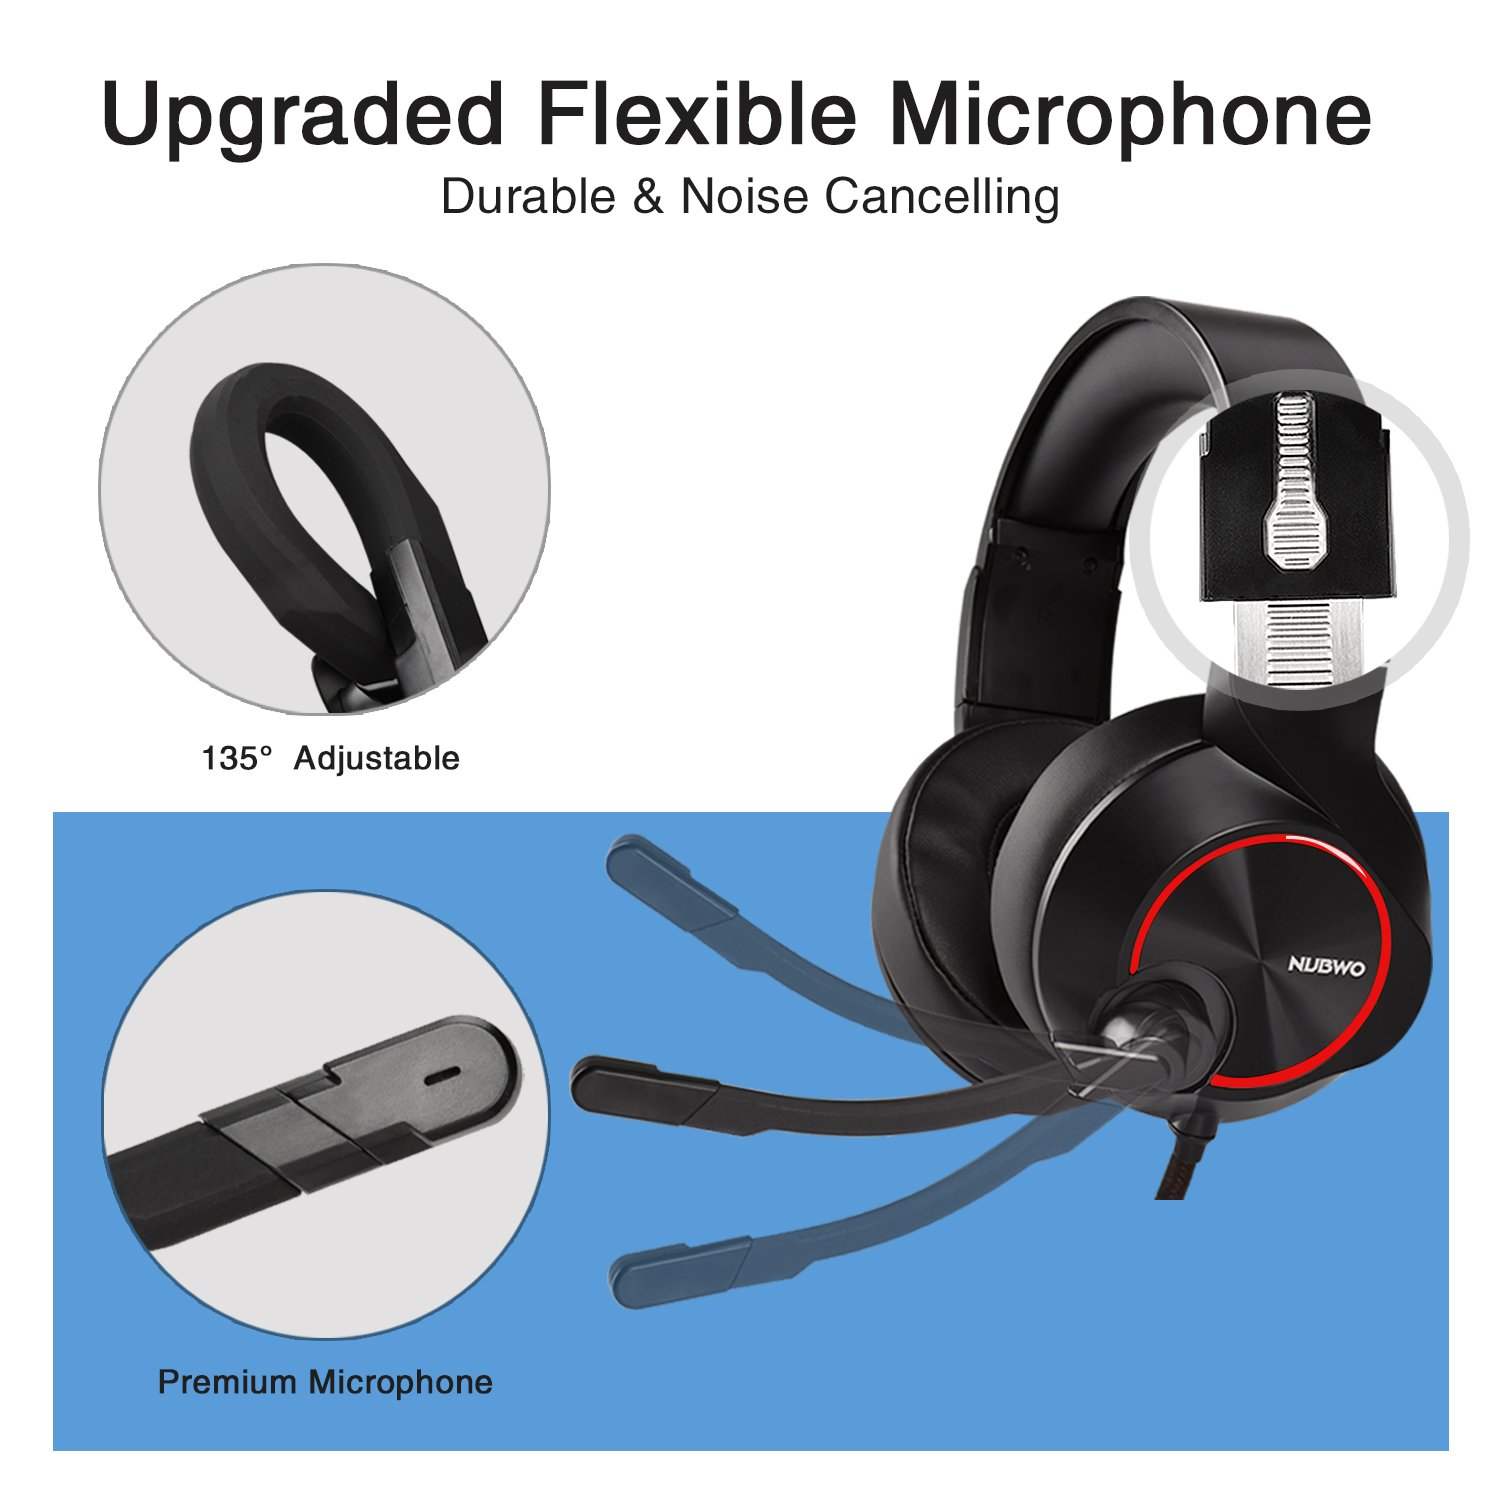 Gaming Headset PS4 3.5mm Wired Stereo Comfort Over-Ear Gaming Headphones with Noise Canceling Mic and Volume Control for Xbox one PC PS4 Smartphones Tablet Computer